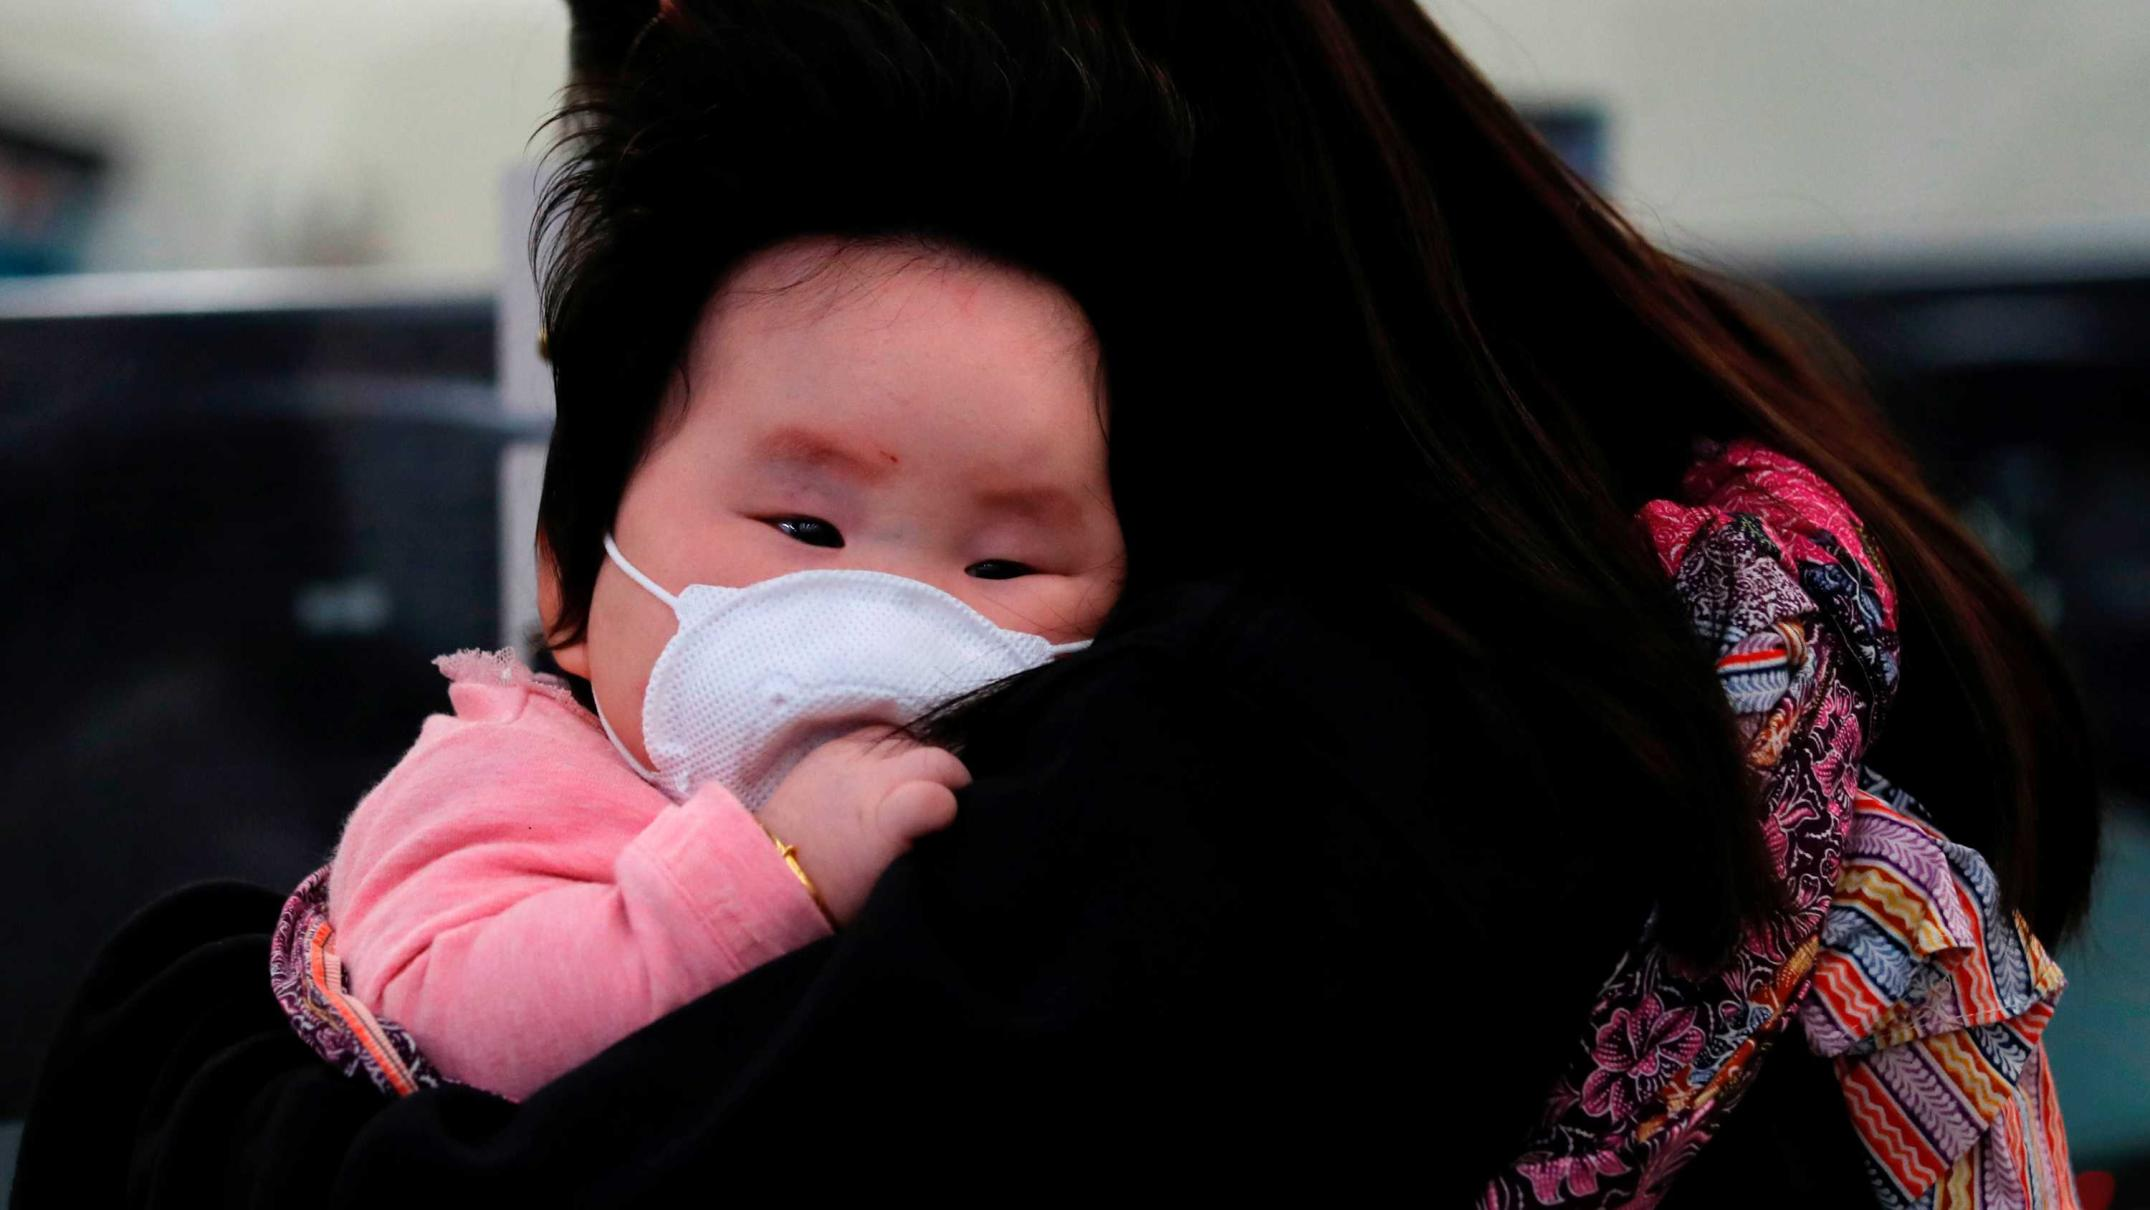 Coronavirus death toll rises to 56 as Chinese President Xi Jinping ...